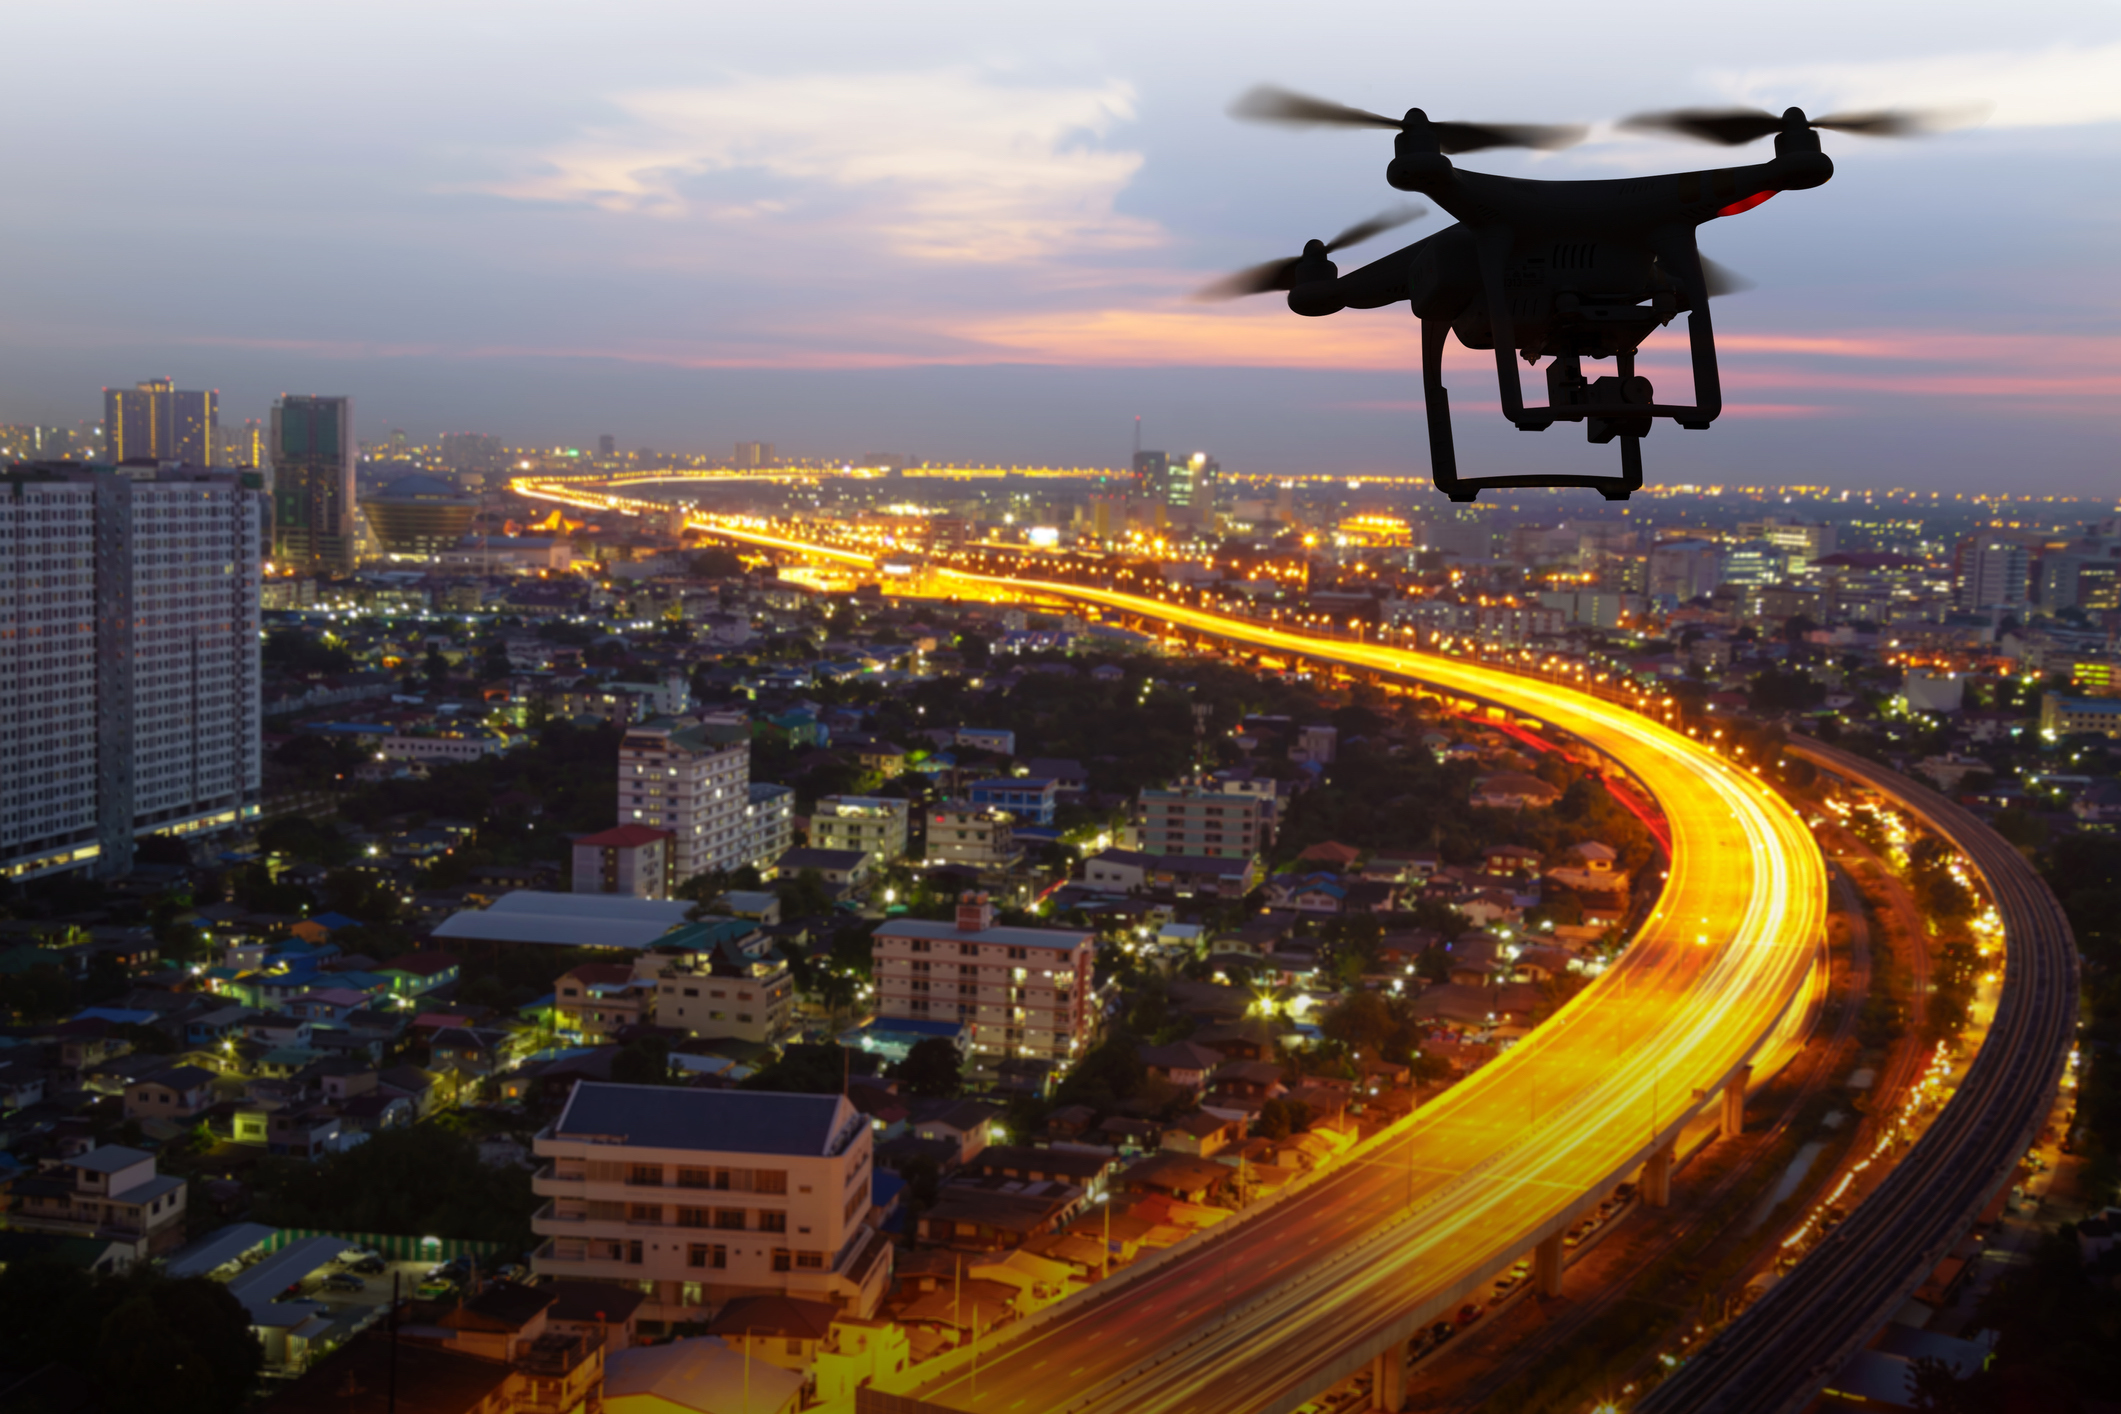 Innovation call for urban drone technology